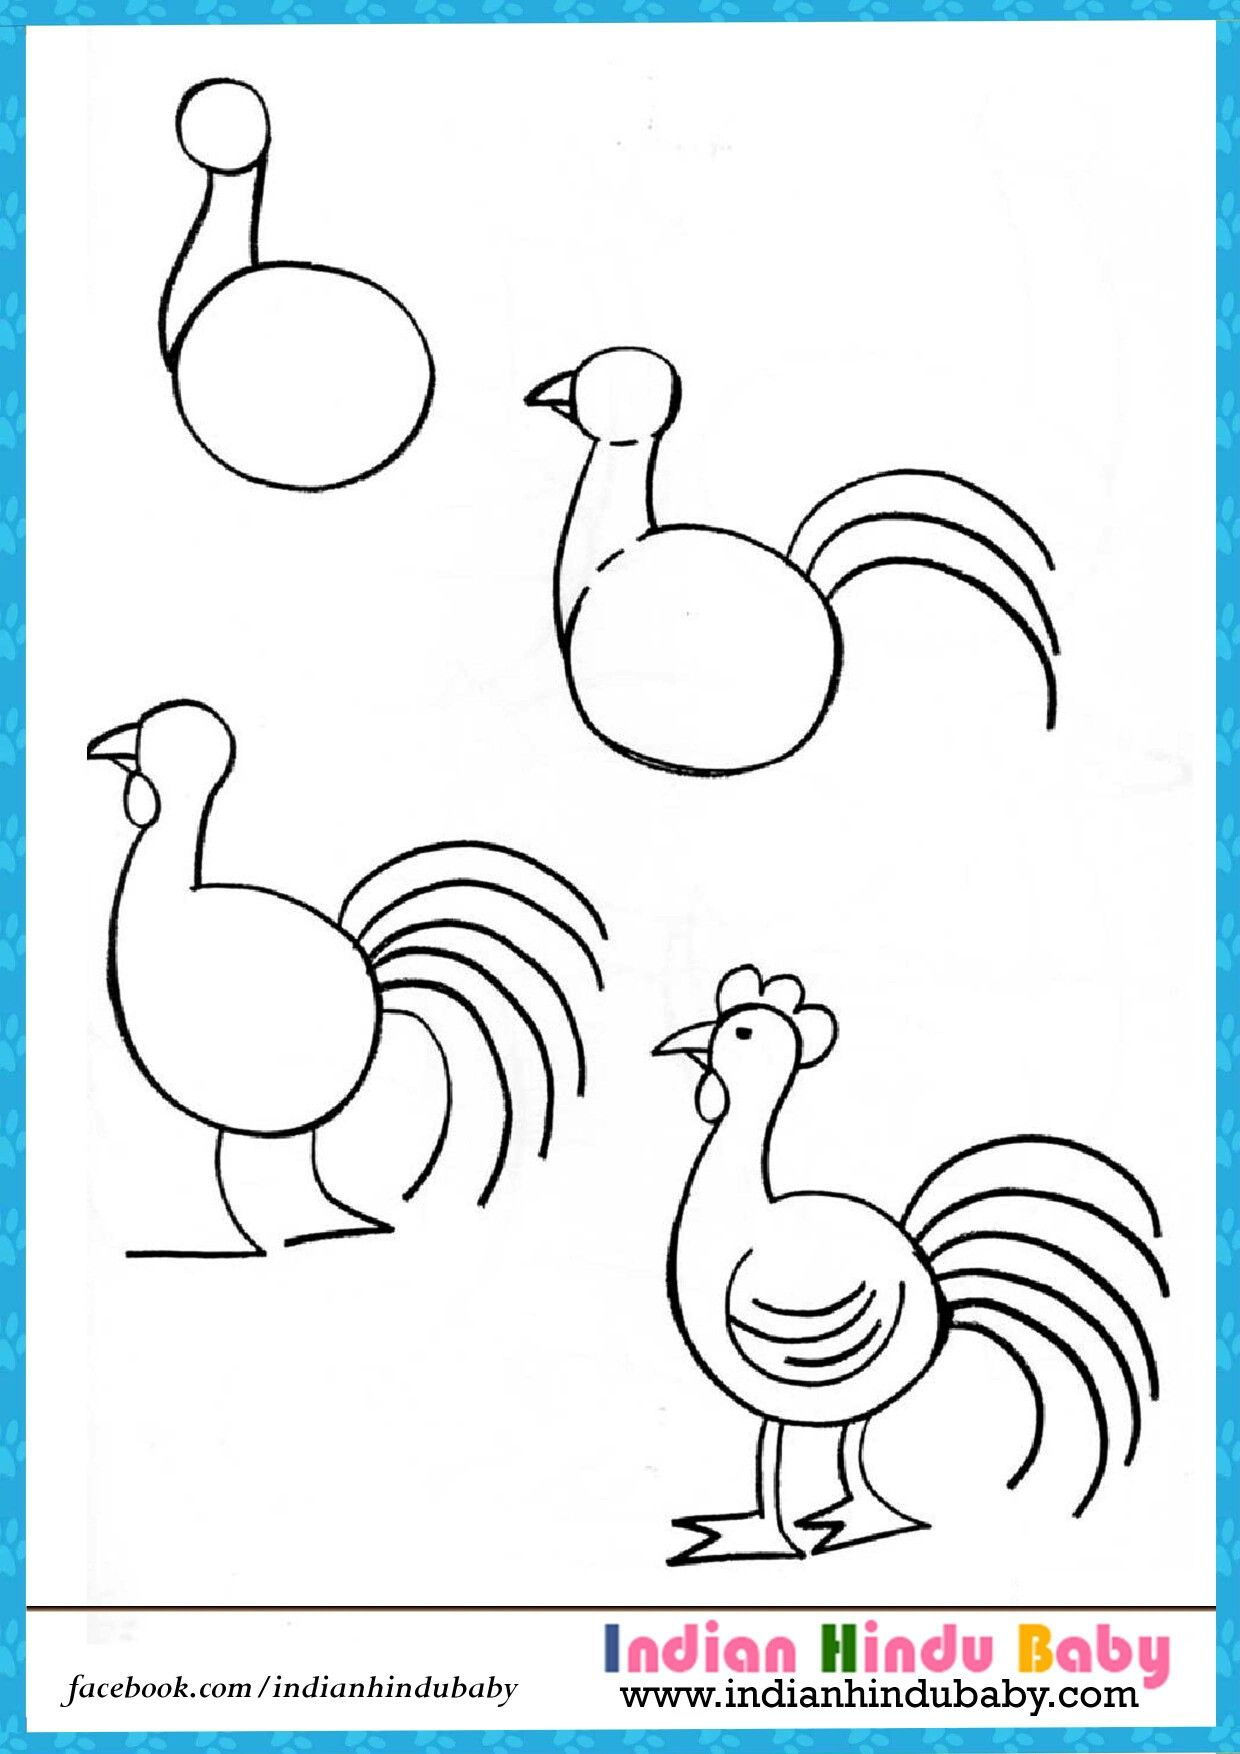 Teach your kid to draw \'Hen\' with simple drawing tips - https://www ...